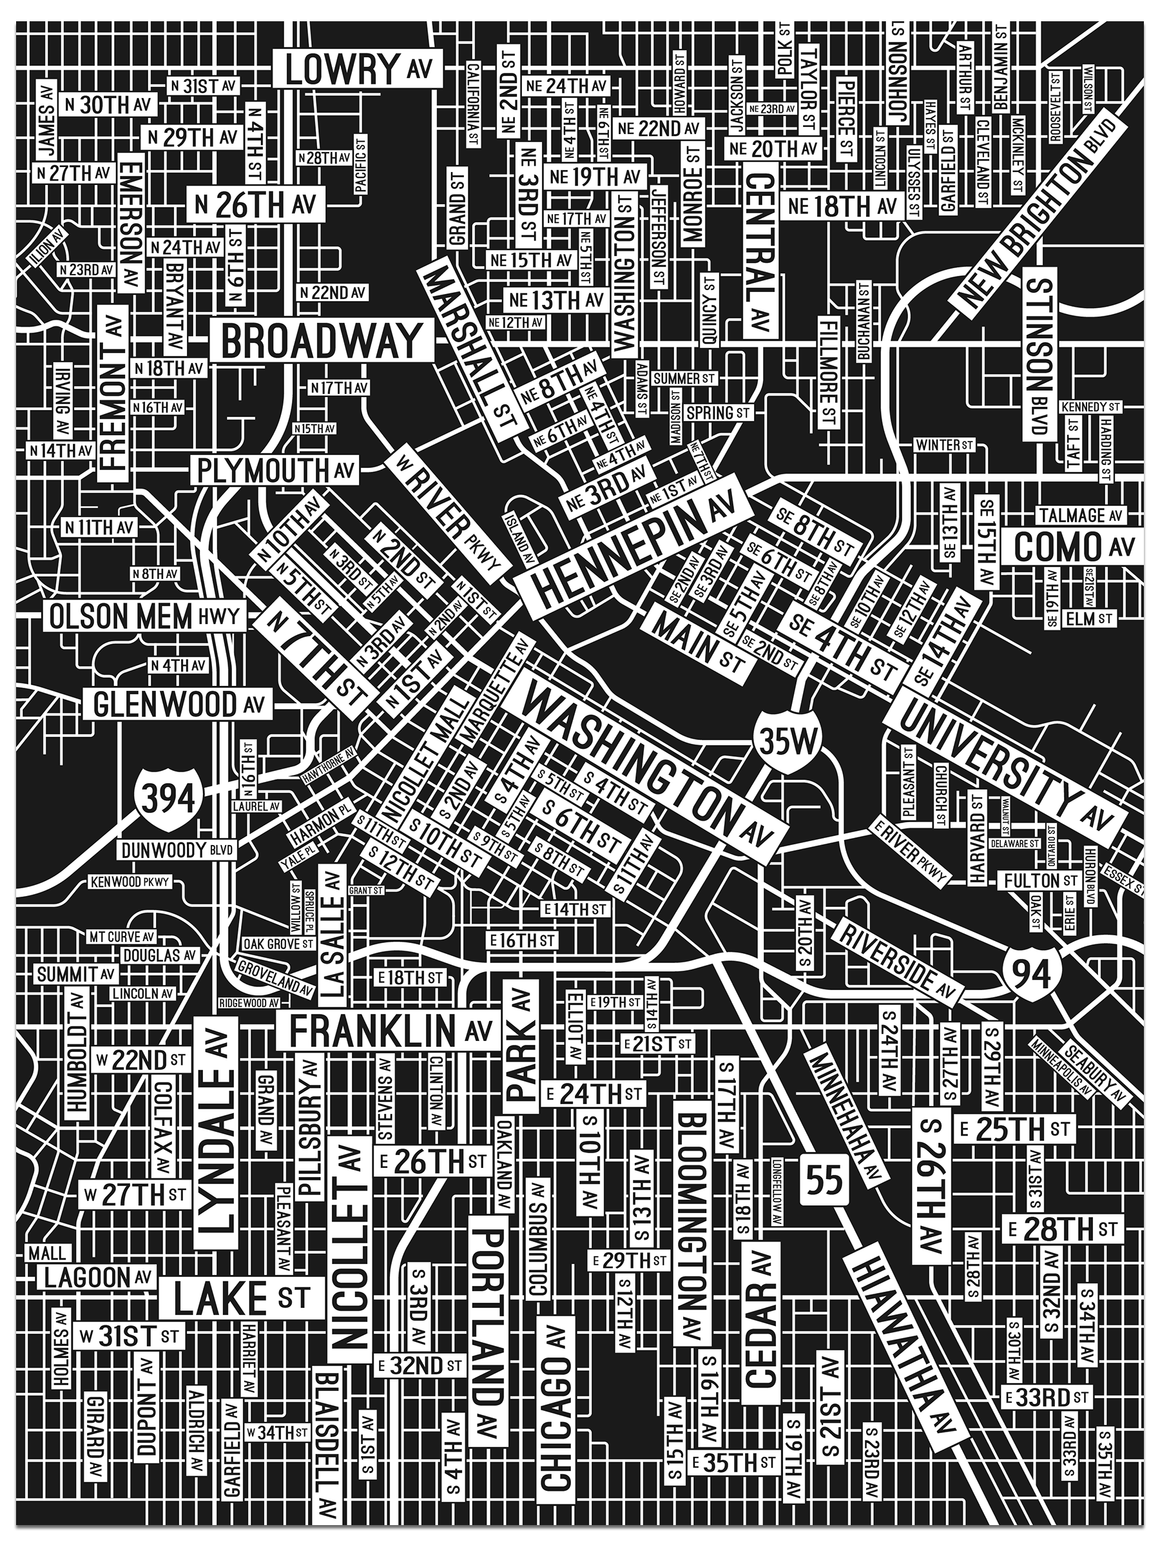 Minneapolis, Minnesota Street Map Poster